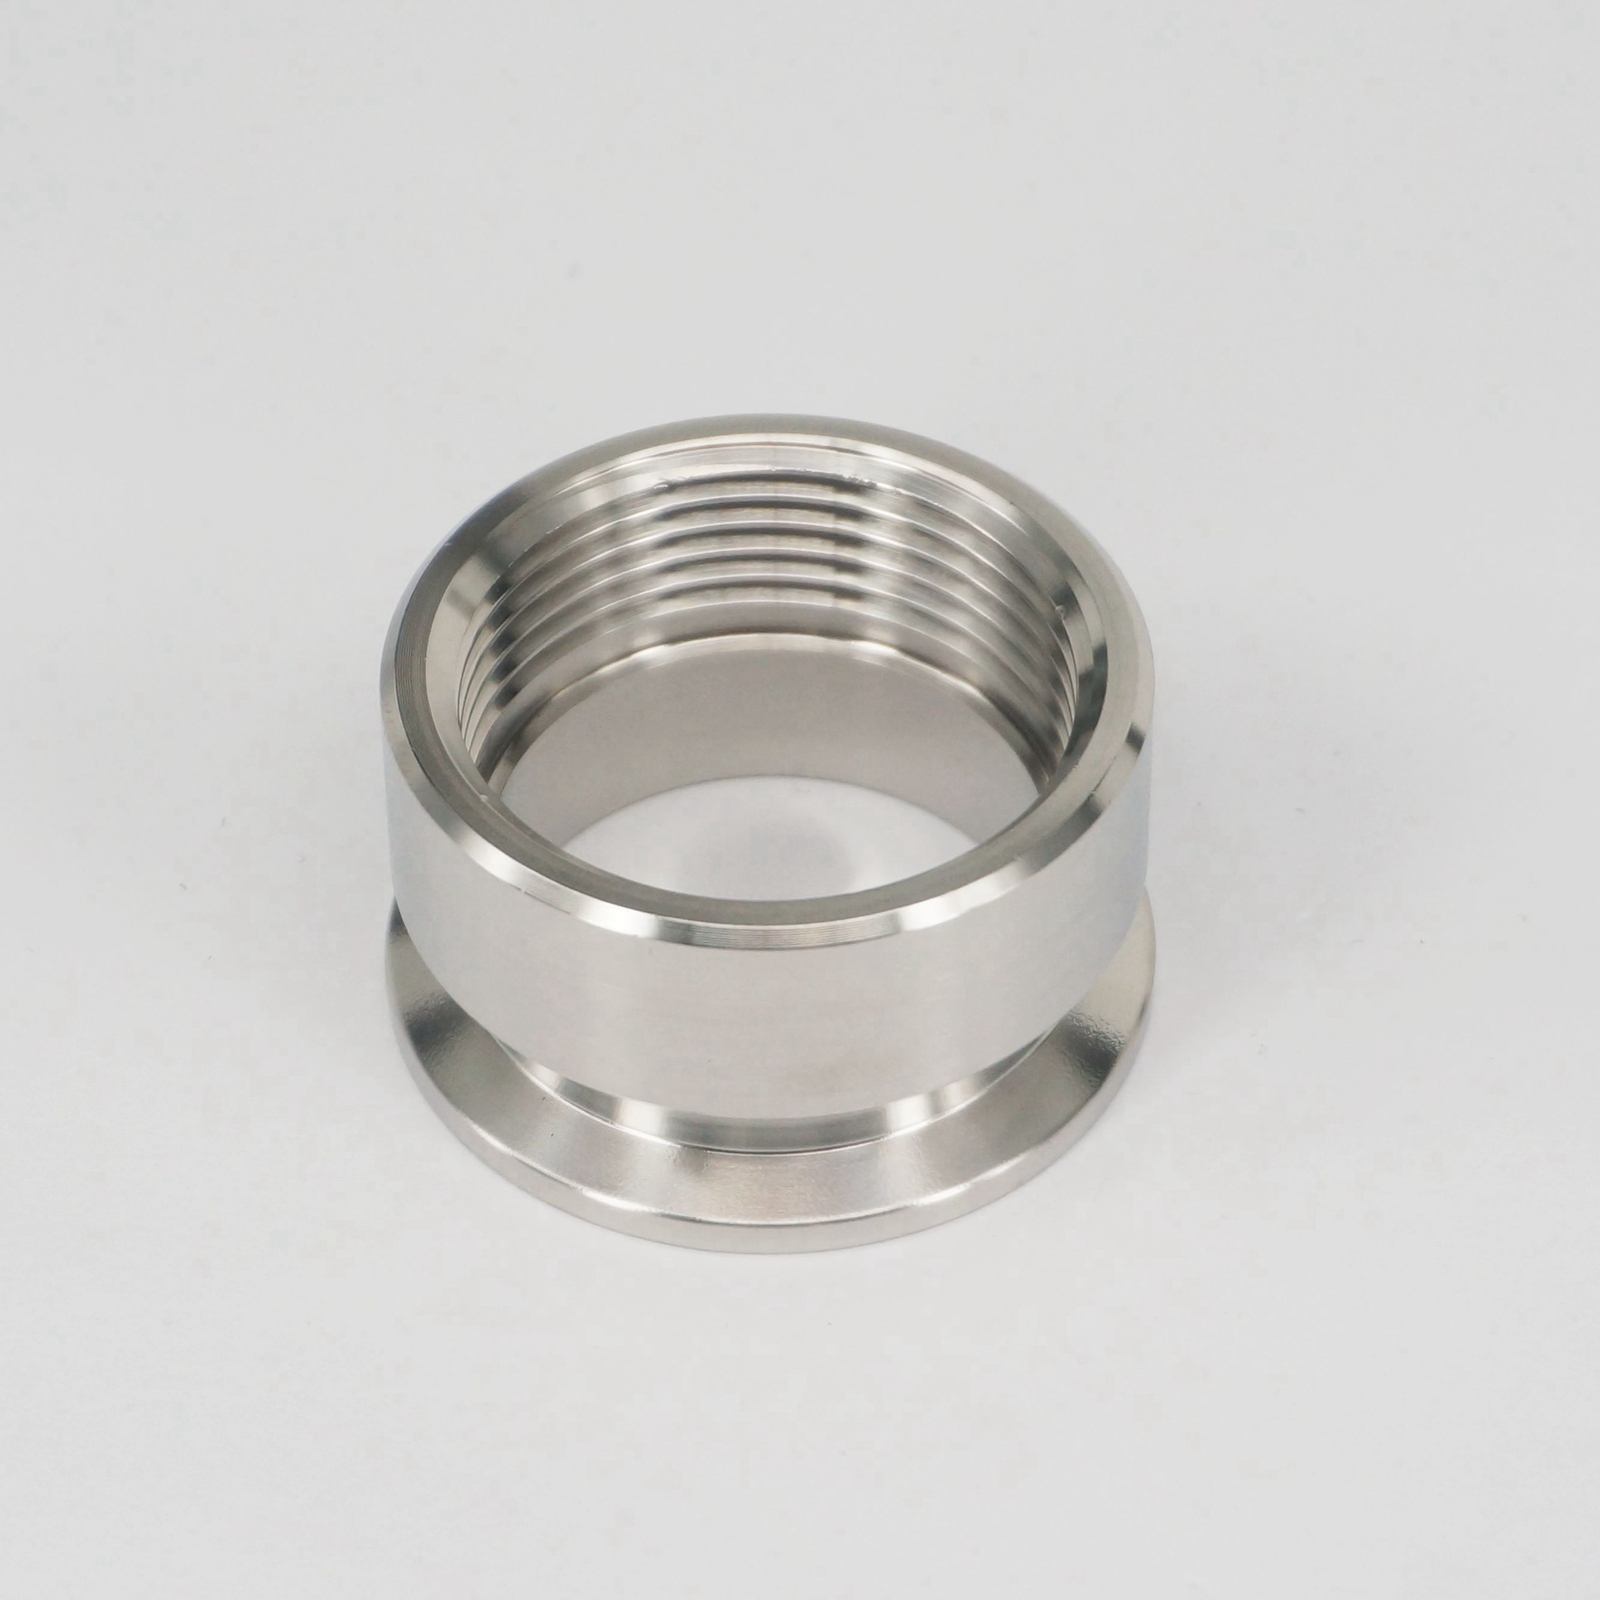 1-1/4 BSP Female x 1.5 Tri Clamp 50.5mm Ferrule O/D 304 Stainless Steel Sanitary Pipe Fitting Connector For Homebrew 102mm tube o d x 106mm ferrule o d 304 stainless steel sanitary weld ferrule connector pipe fitting